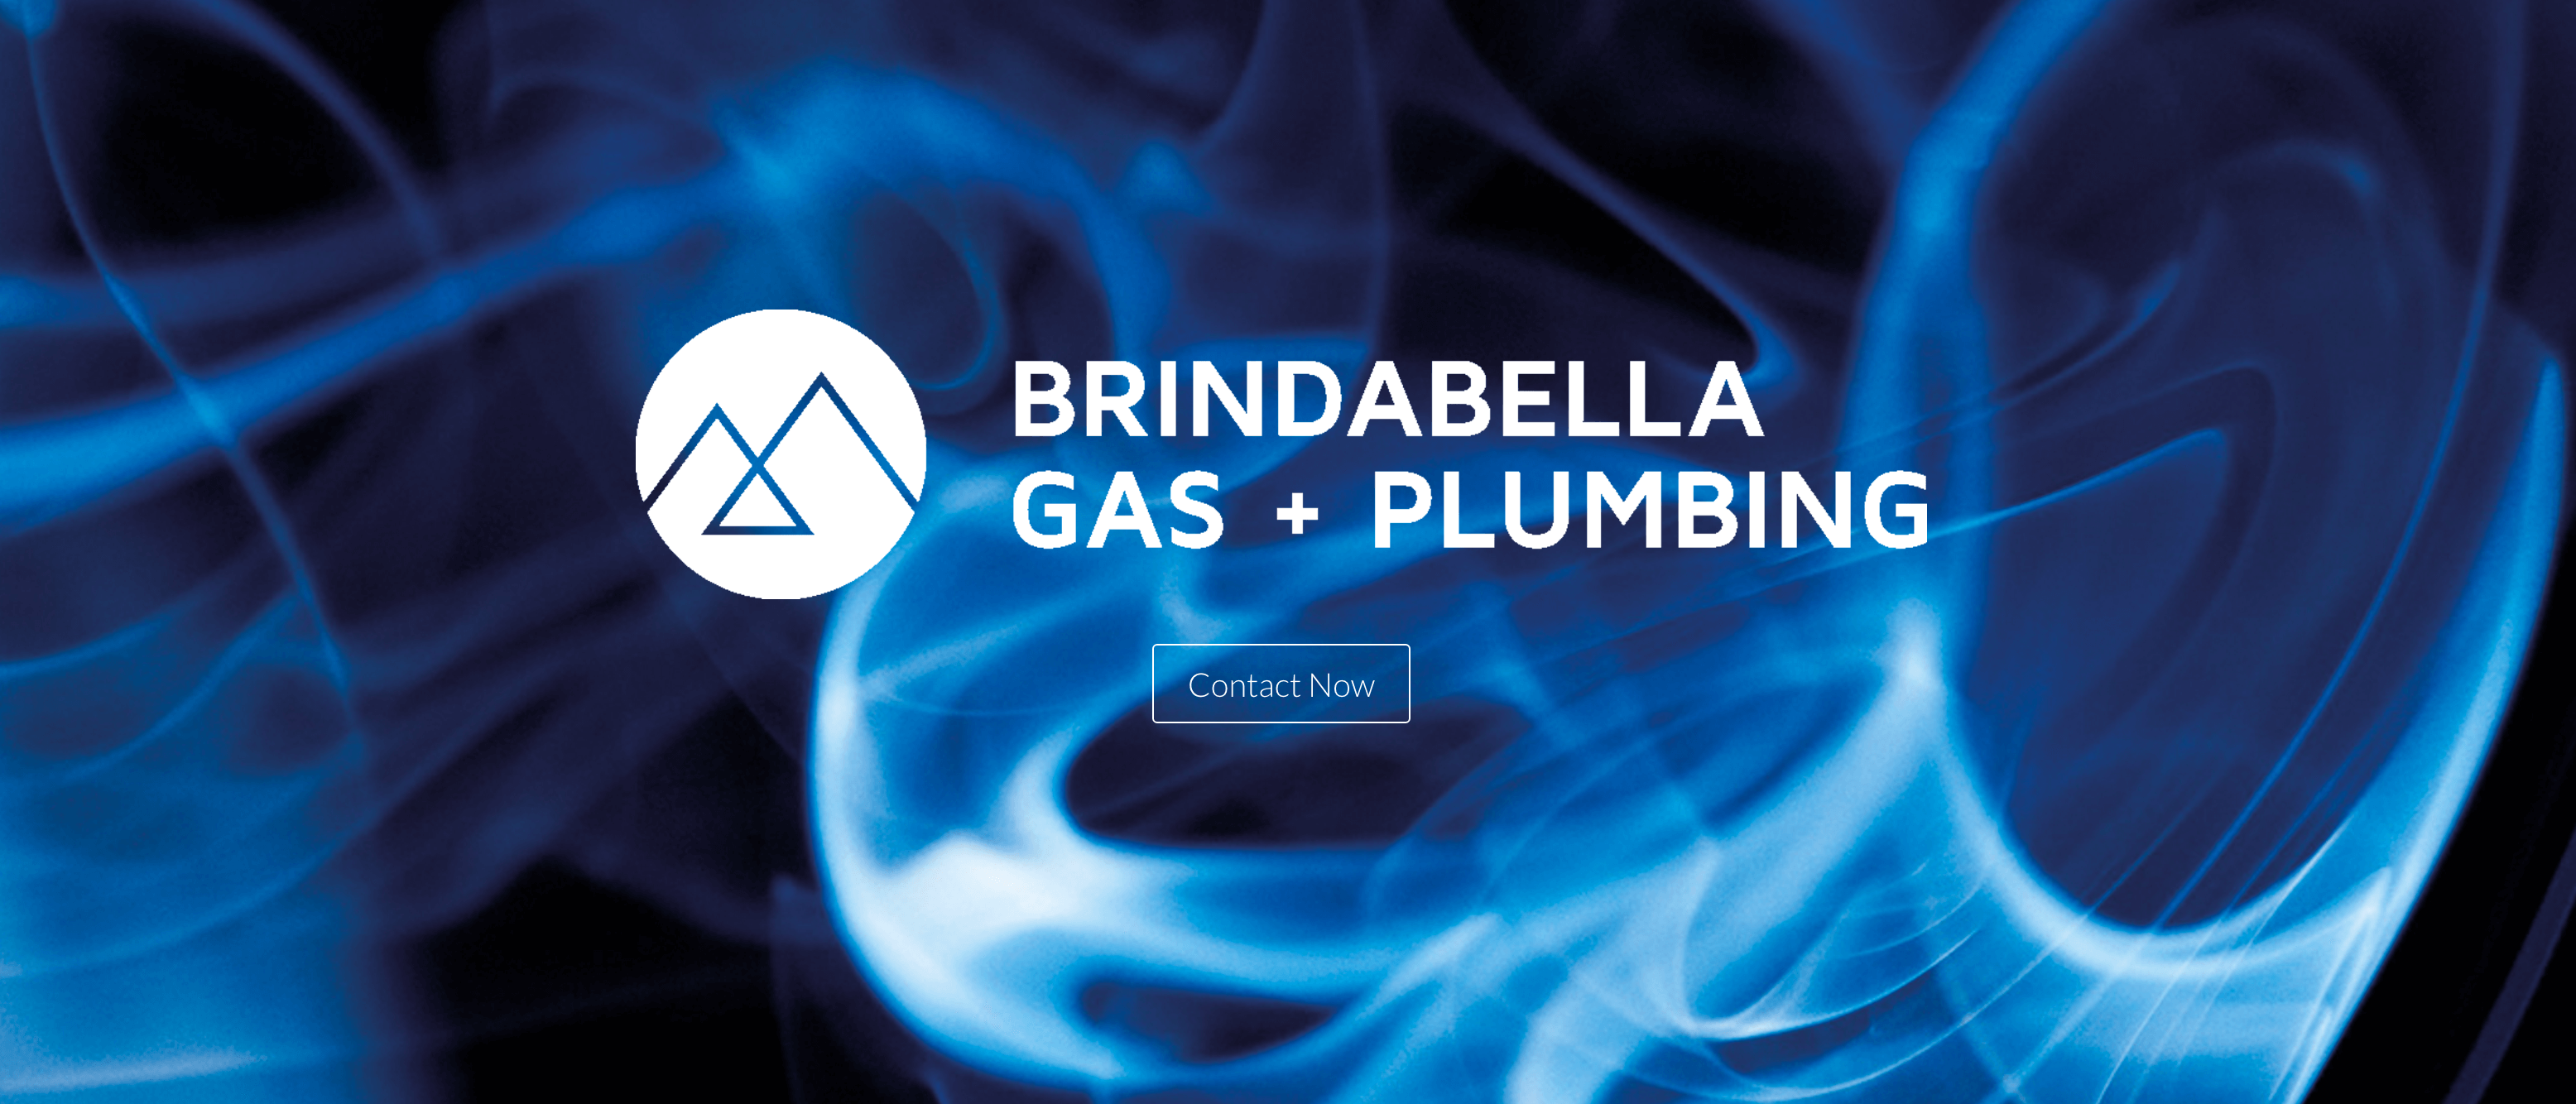 The Brindabella homepage.